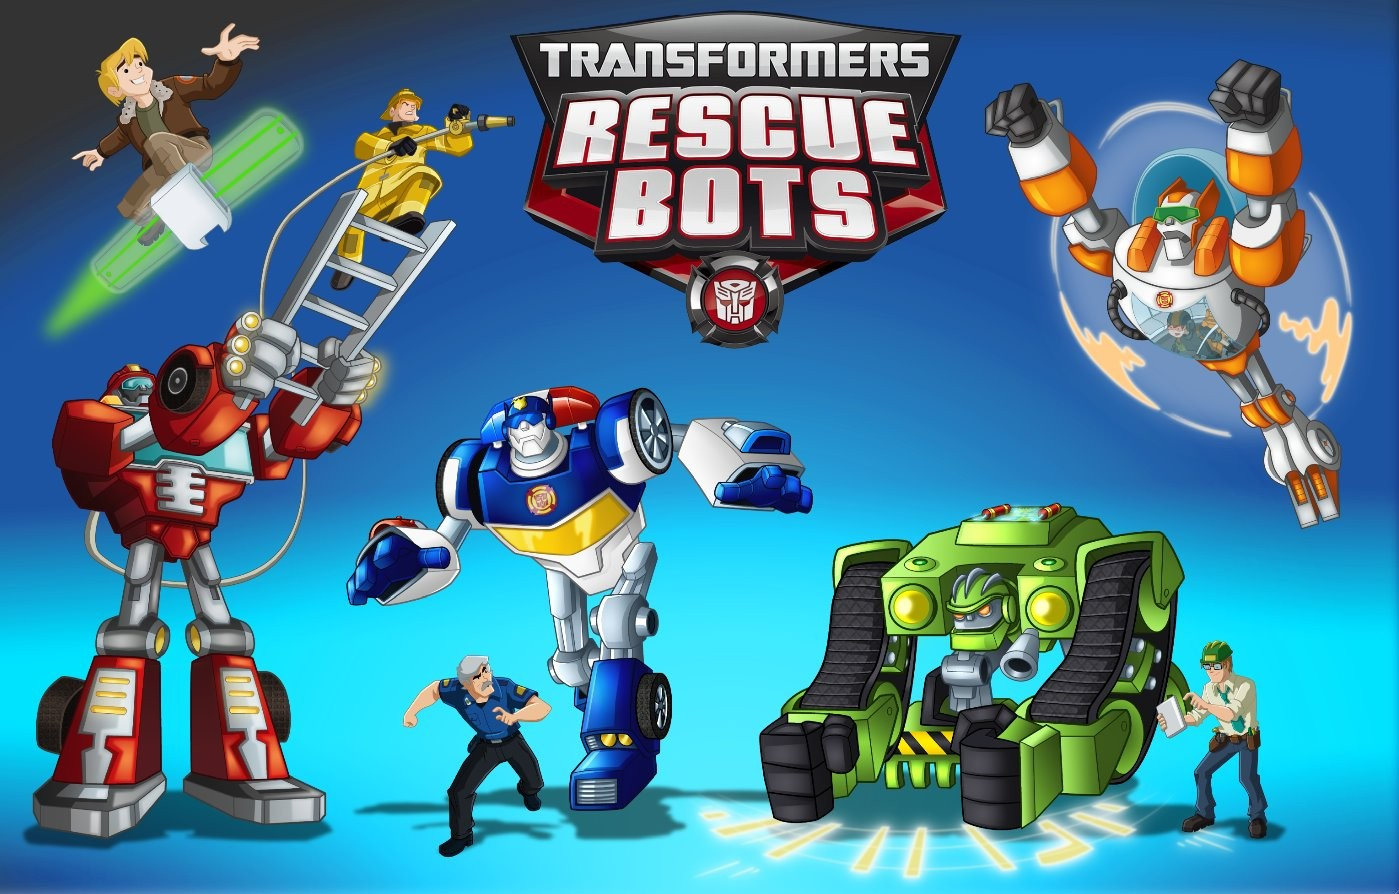 Transformers News: Rescue Bots Academy And Another New Transformers Show Coming Soon